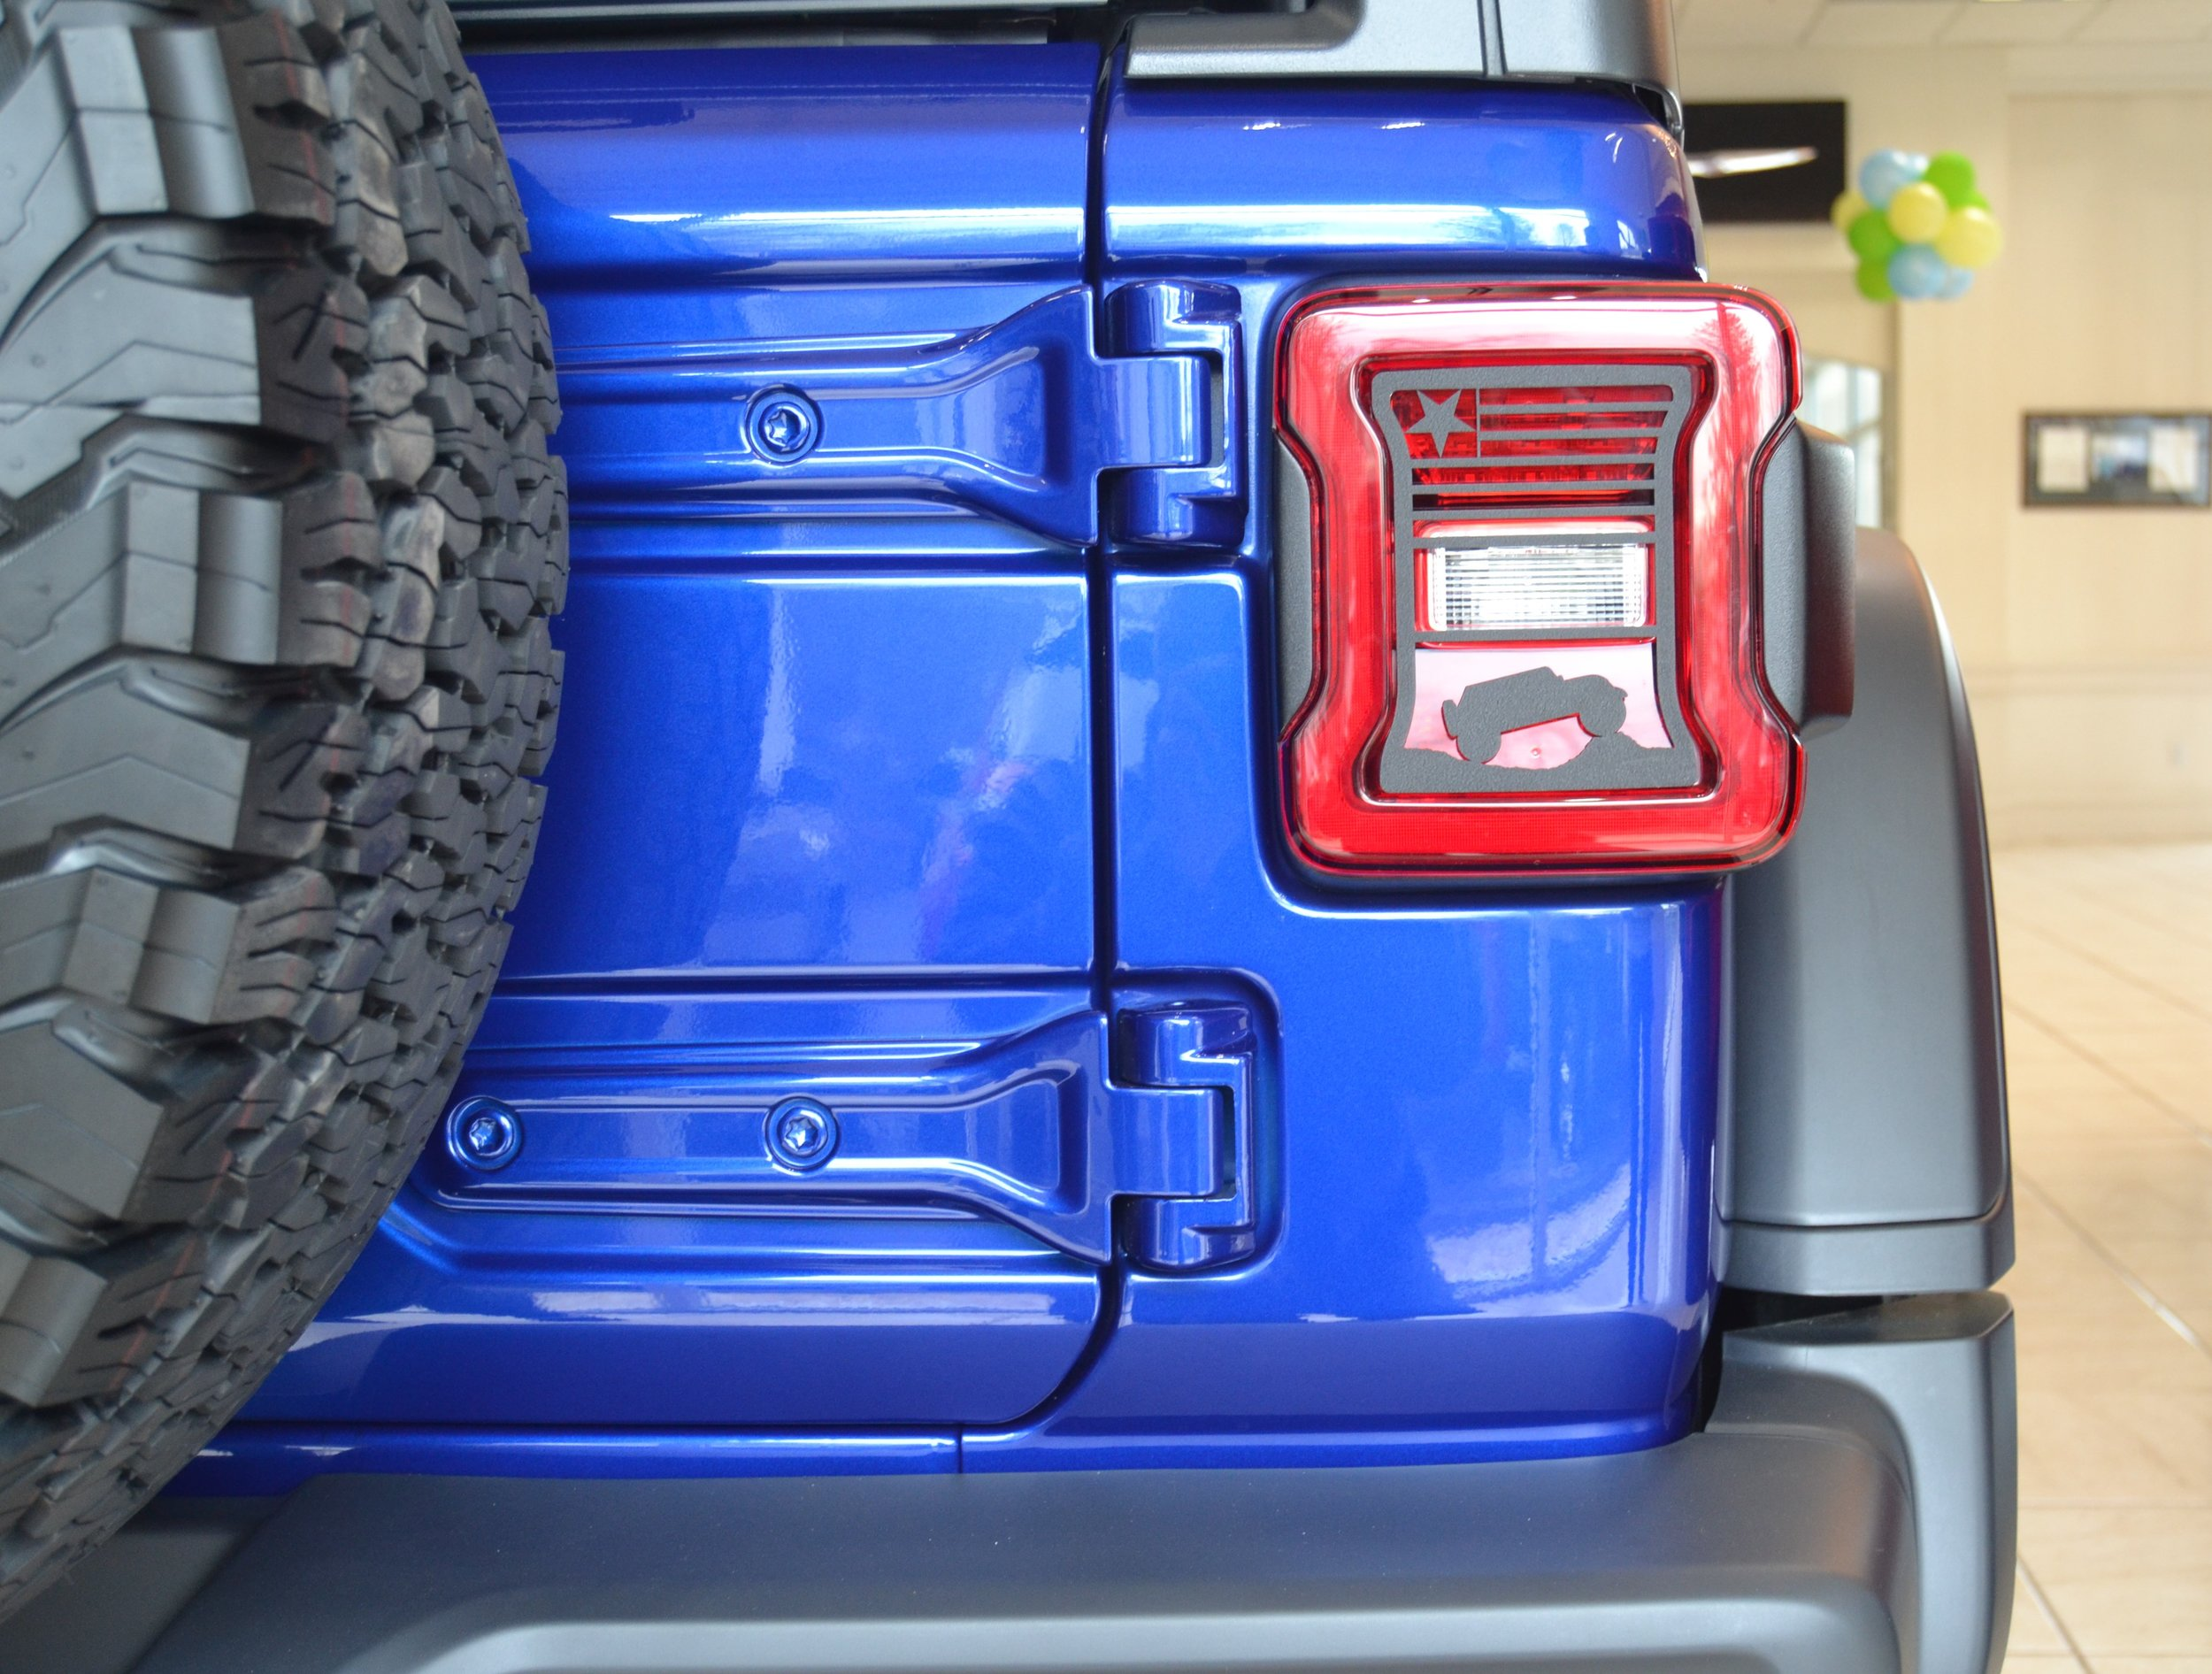 NEW - 2018 PRESENT  JL  WRANGLER USA PROUD / TERRAIN TAILLIGHT GUARD. SEE PLACE YOUR ORDER PAGE FOR ADDITIONAL DETAILS. FOR LED TAILLIGHT OPTION ONLY.